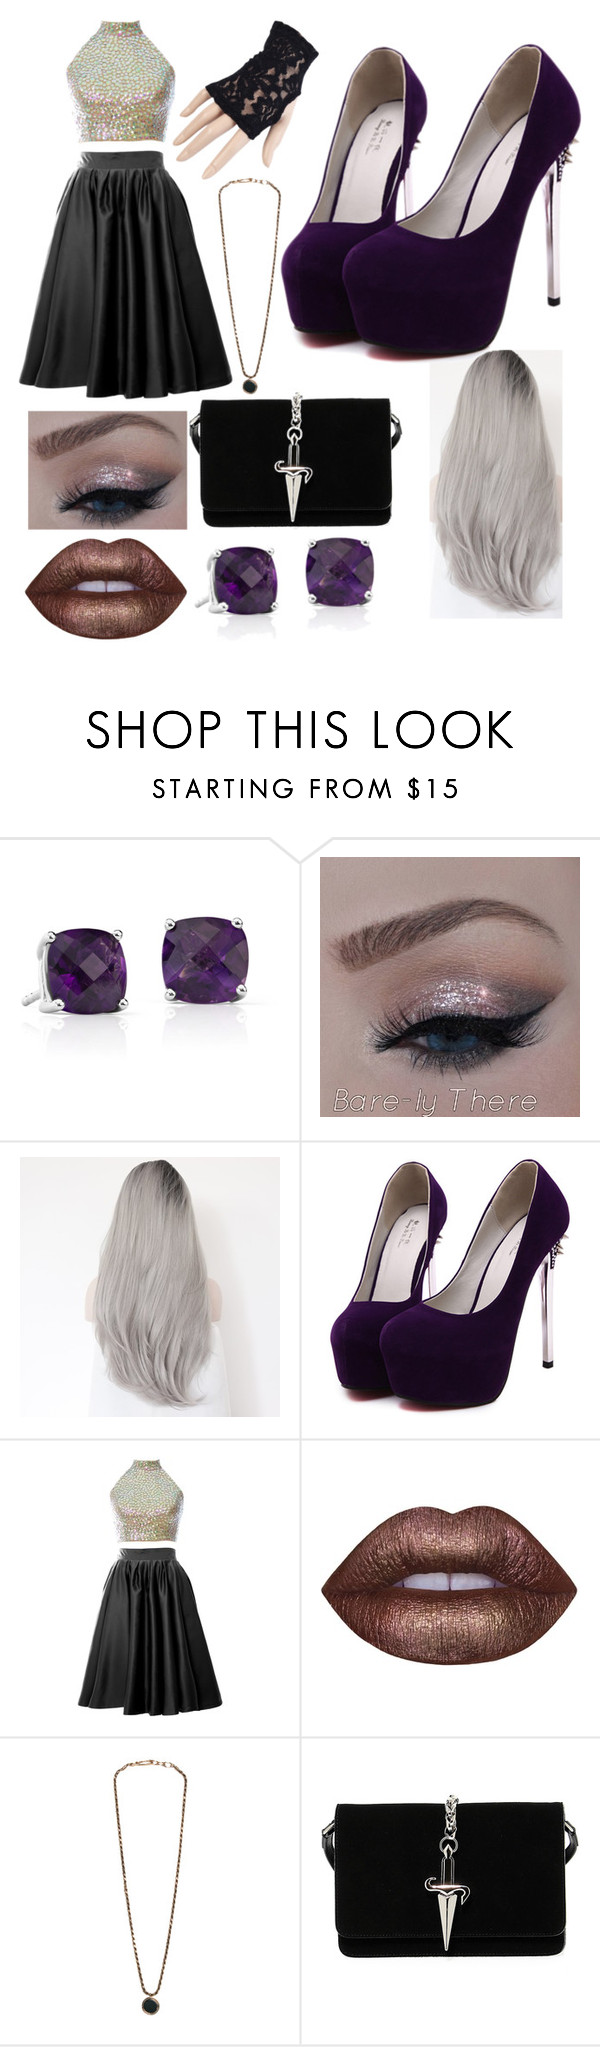 """Crys Steele Formal Outfit 1"" by crys-steele ❤ liked on Polyvore featuring Blue Nile, Lime Crime, George Frost and Cesare Paciotti"